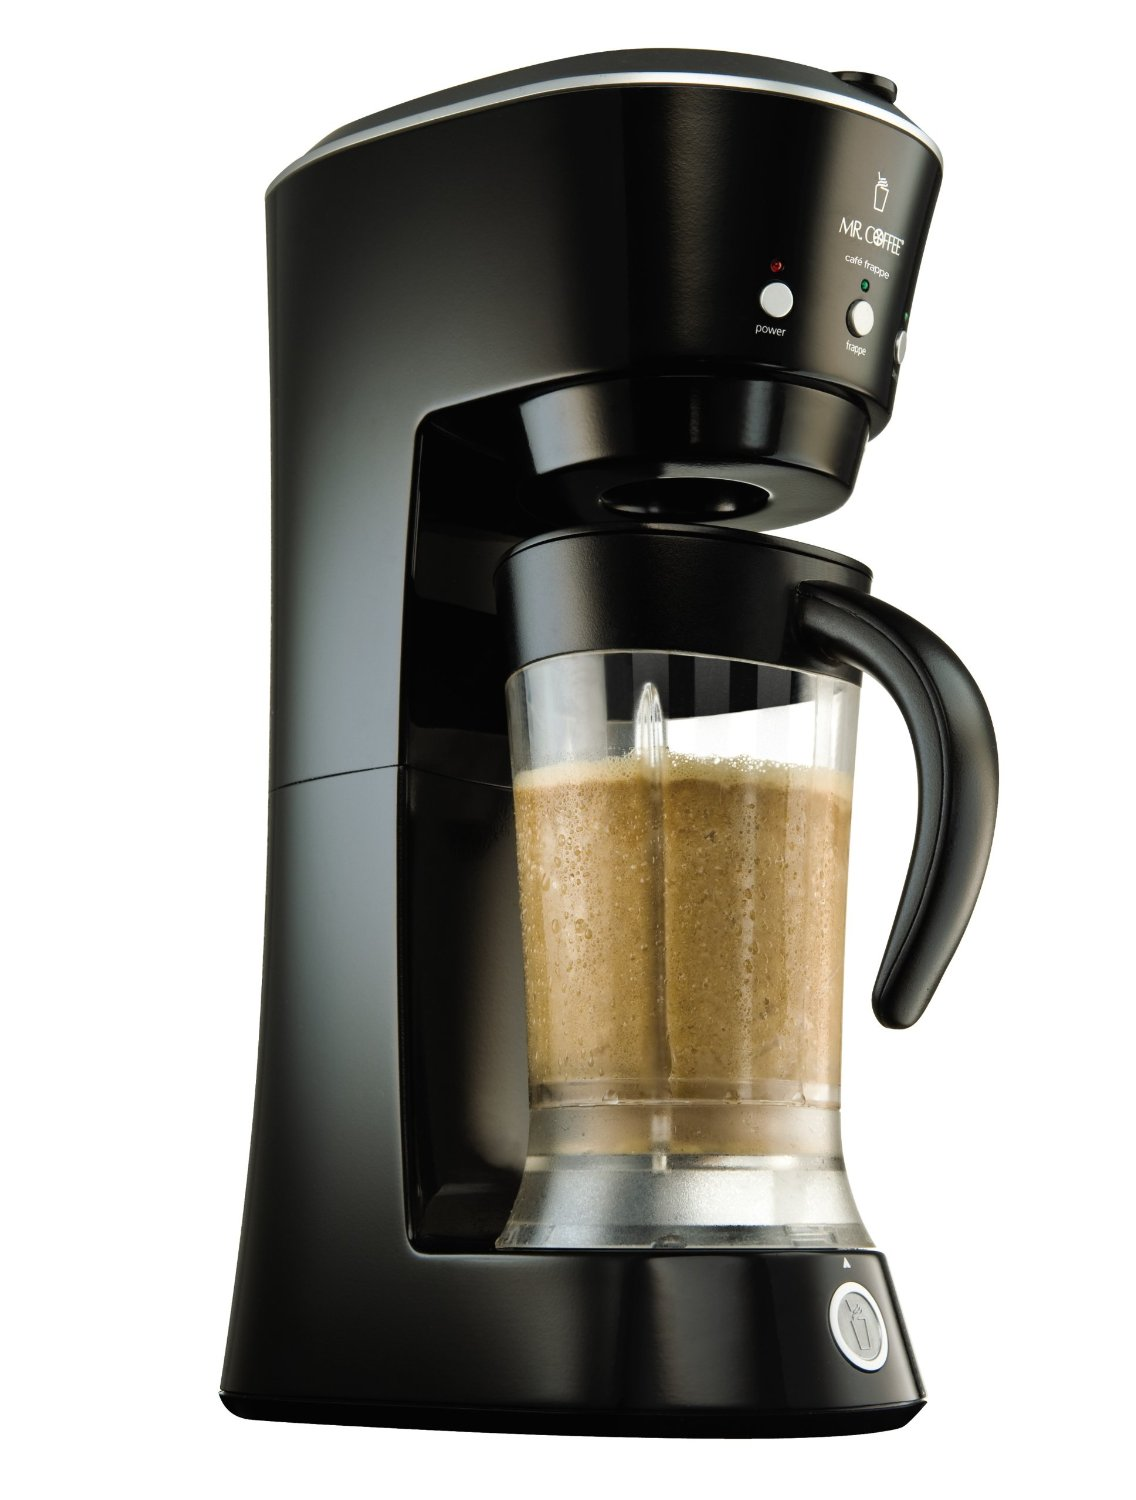 Mr coffee bvmc fm1 20 ounce frappe maker buy something cool for View maker